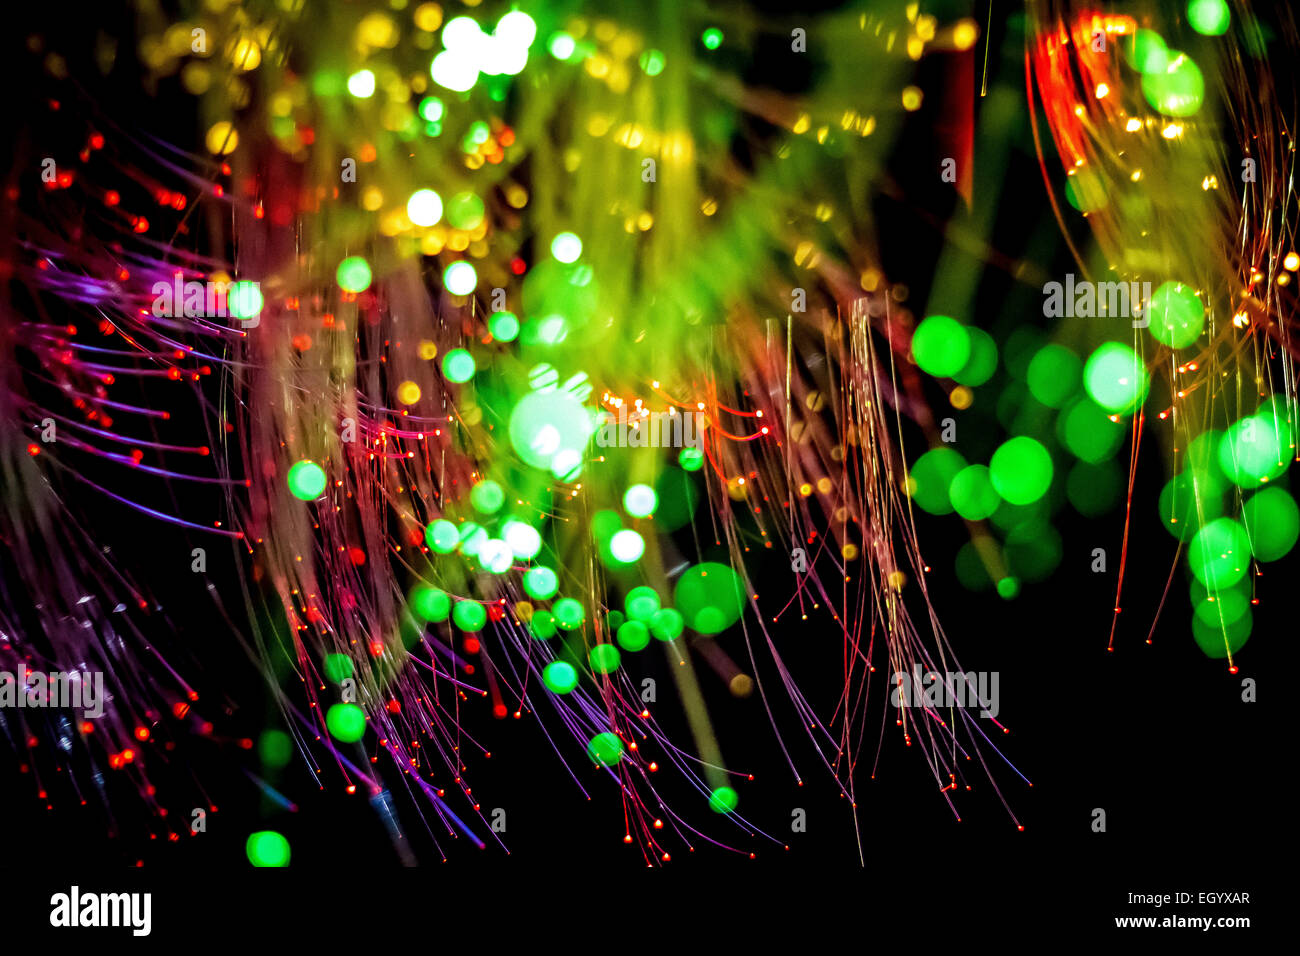 Multicolored Fiber optics with selective focus. - Stock Image